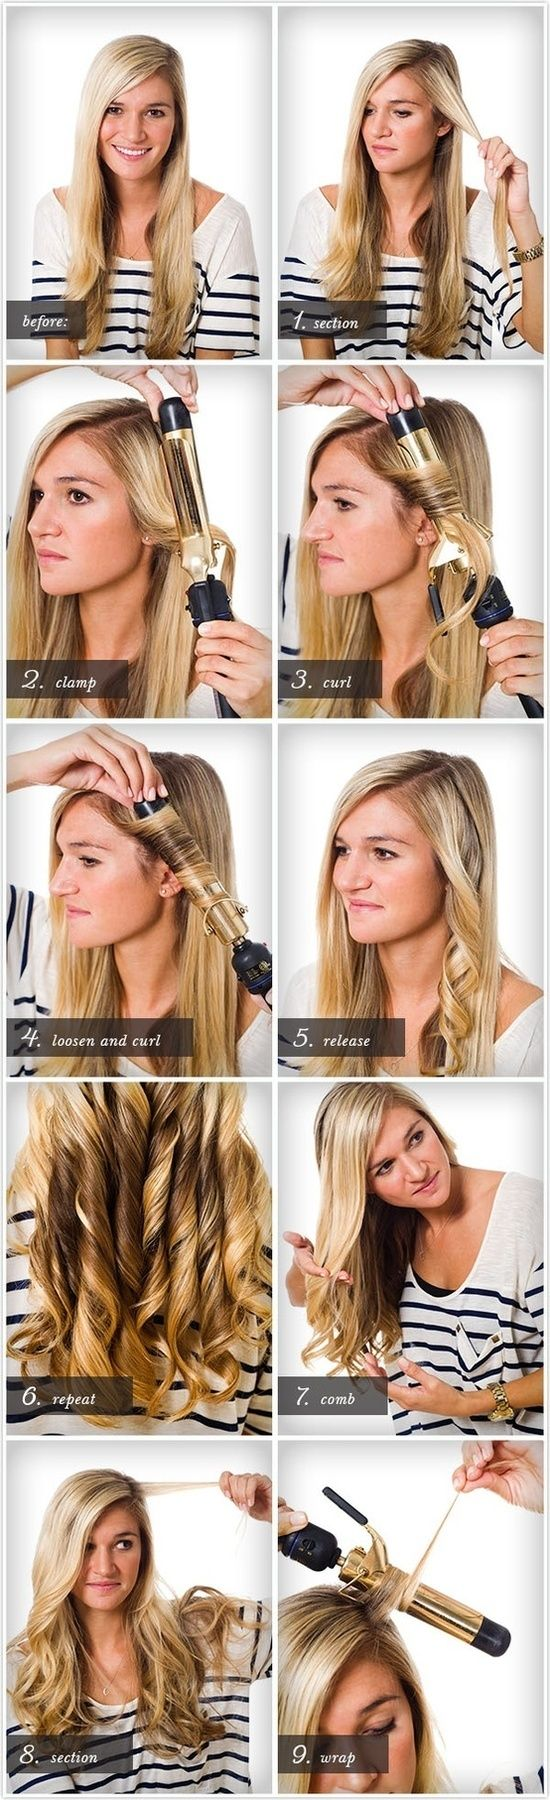 The curling iron is a styling tool that almost ... - Inspiring picture on Joyzz.com